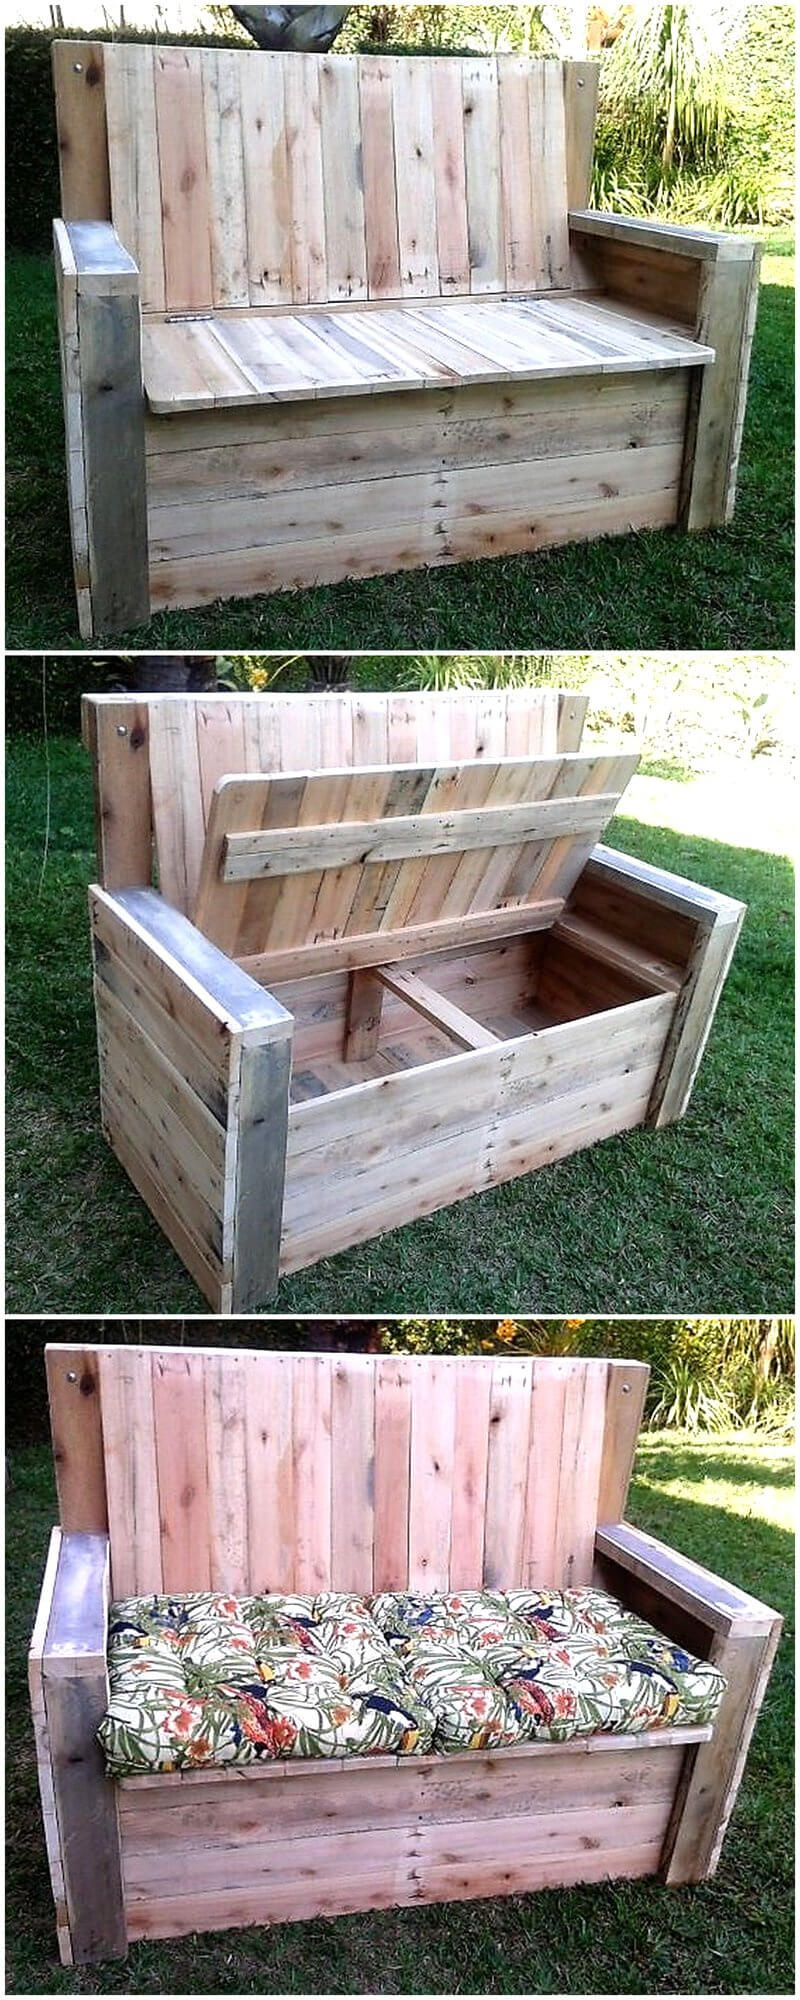 Great Ideas For Reusing or Recycling Wood Pallets | Wood ...